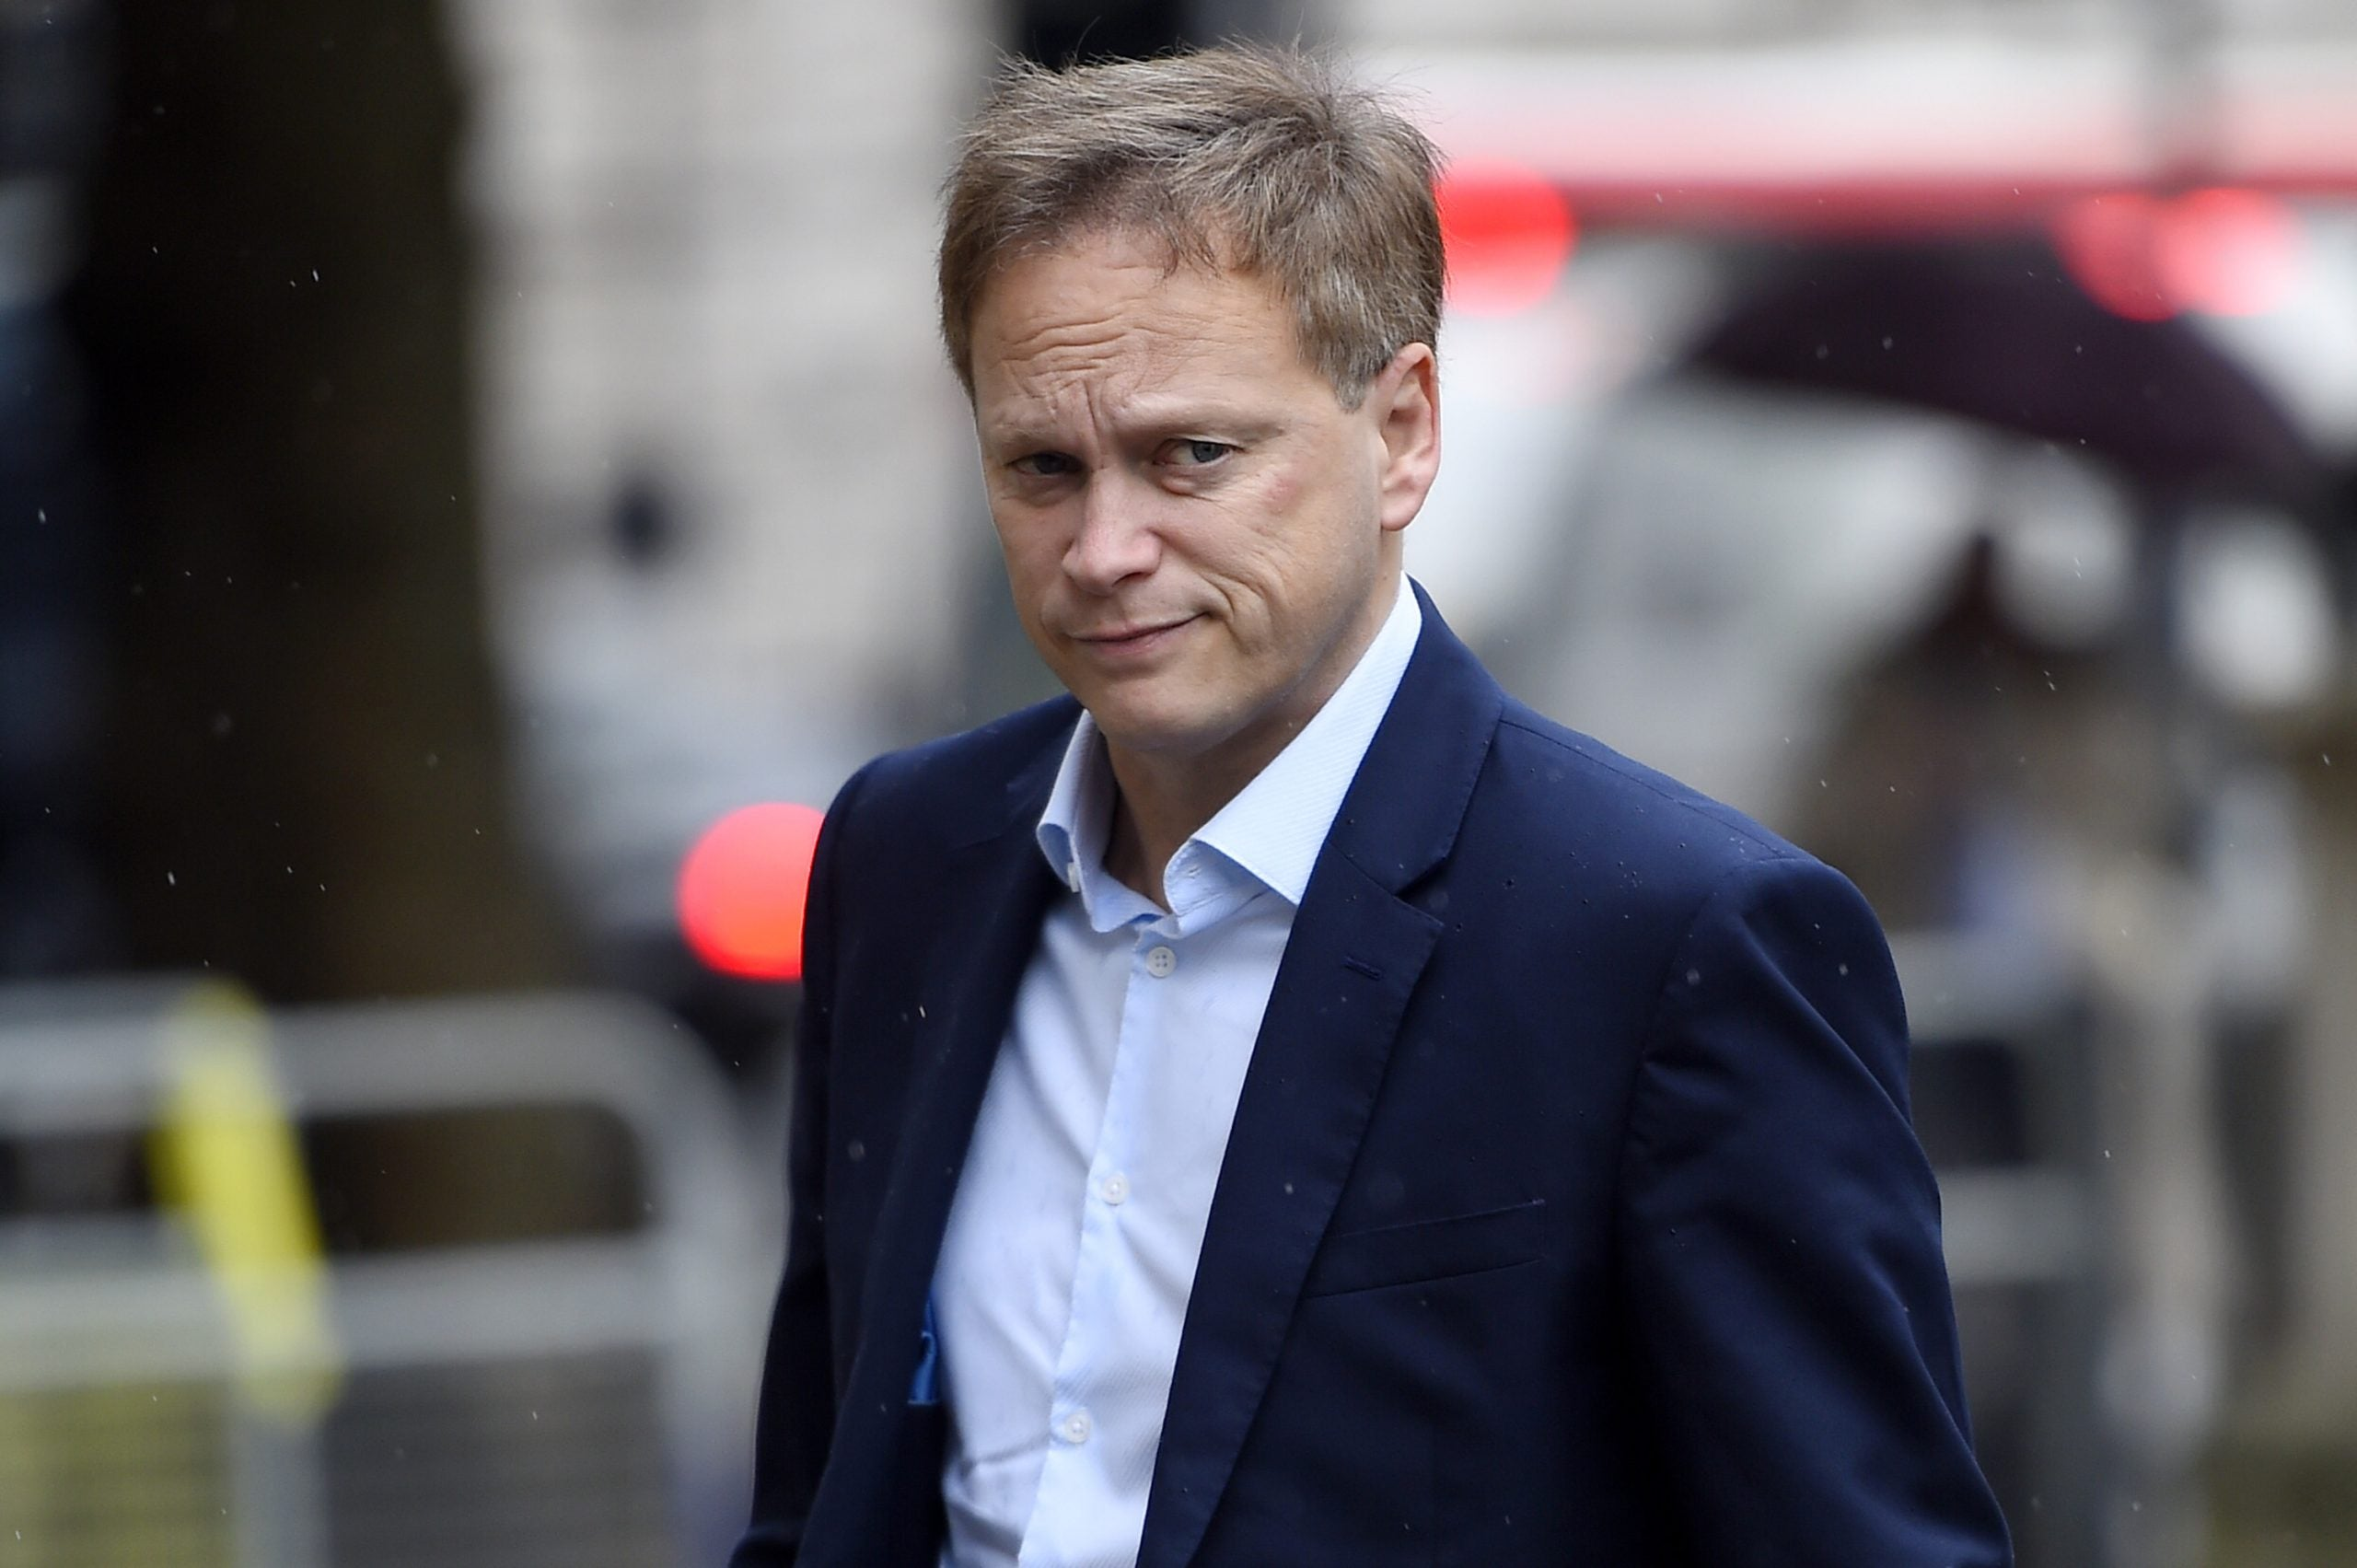 Commons Confidential: Grant Shapps's plane-speaking